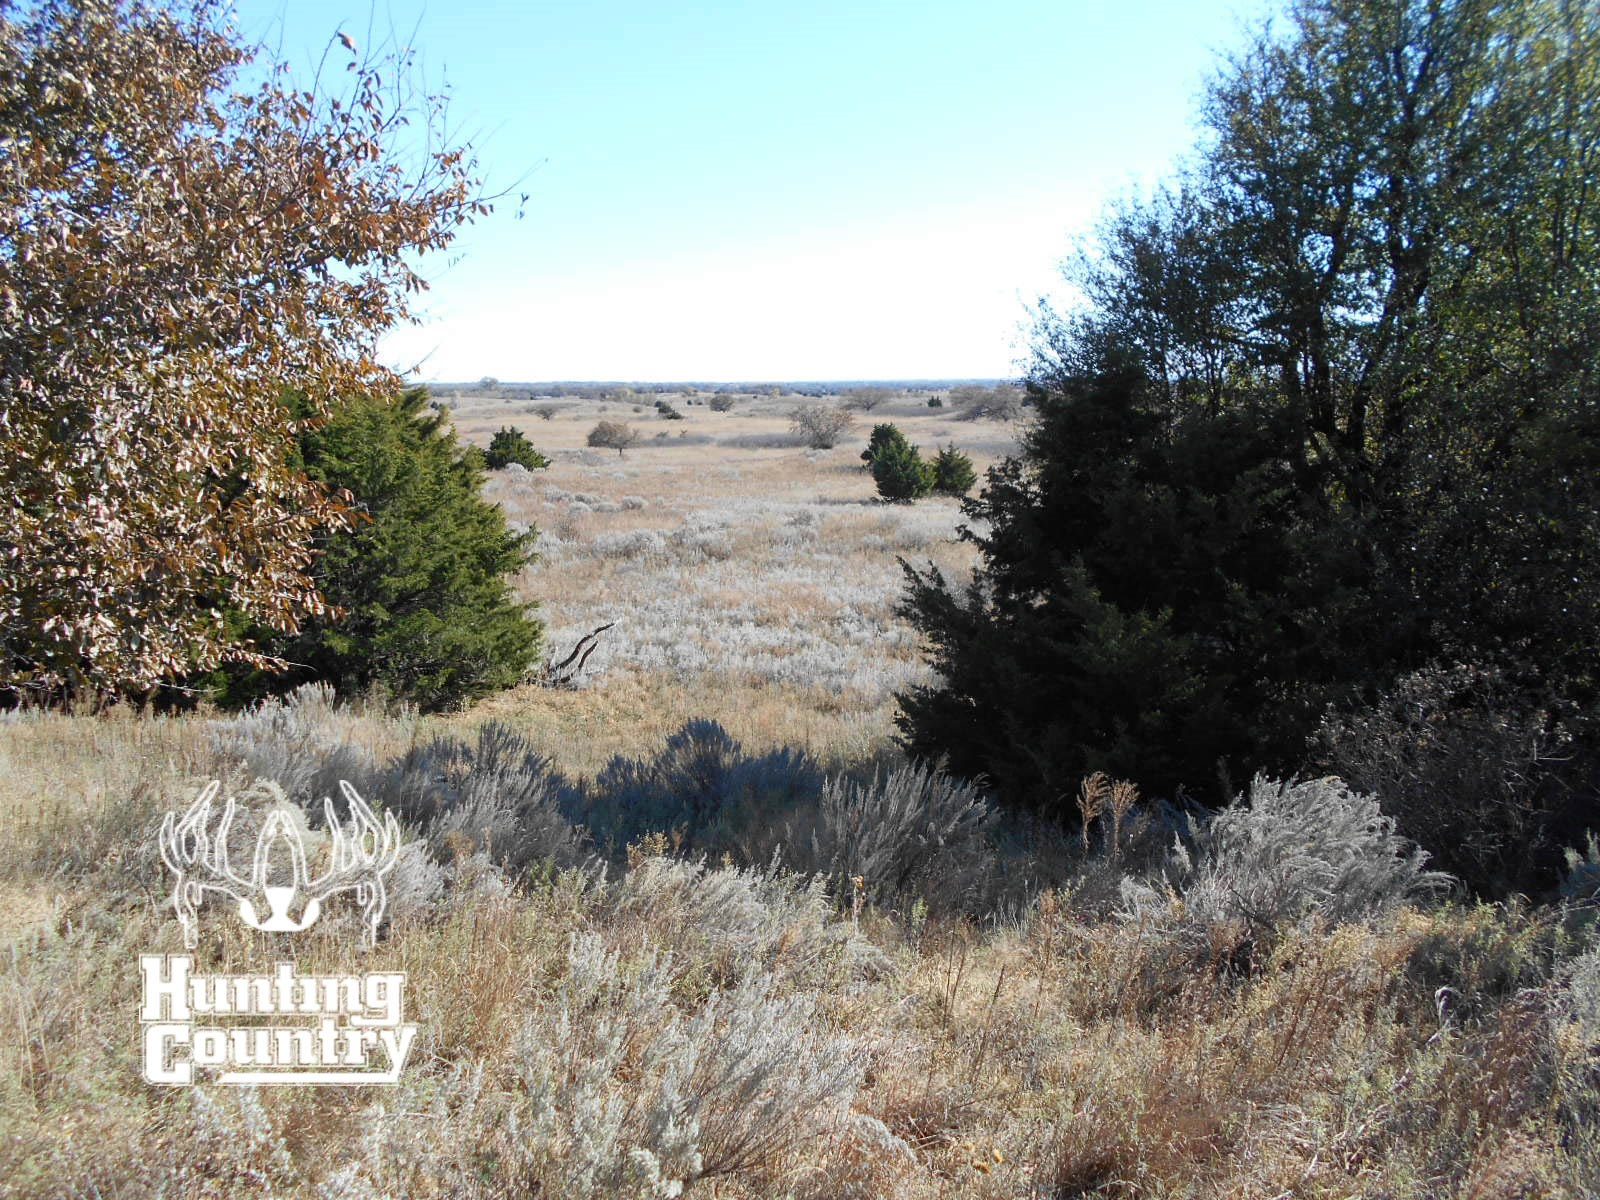 160 acres m/l. WOODS COUNTY OKLAHOMA Hunting Land for Sale